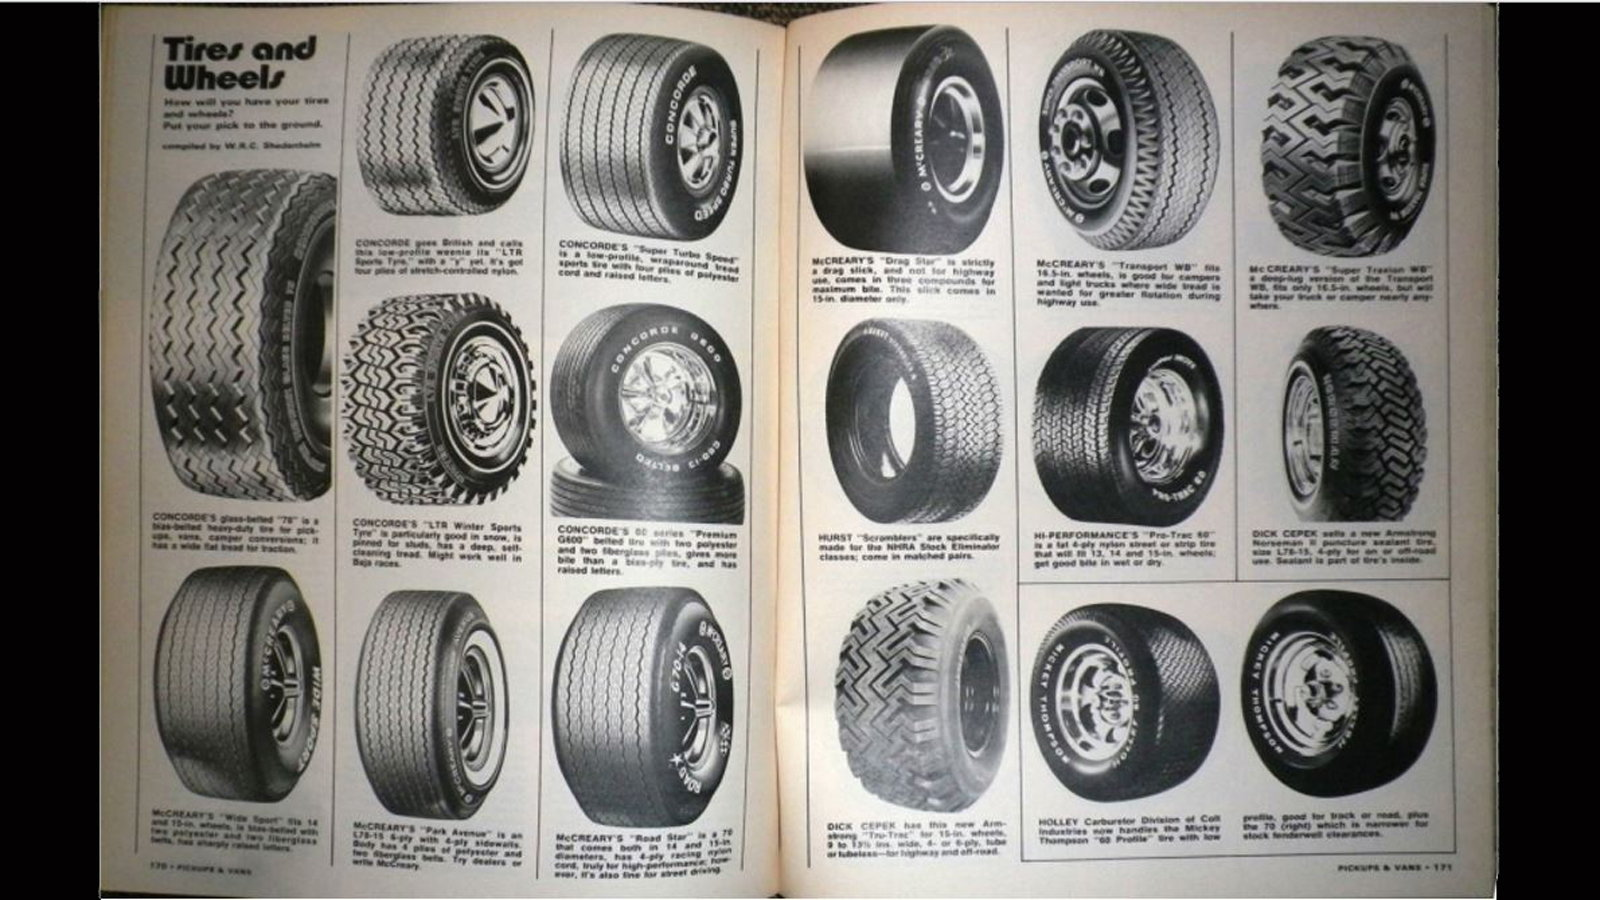 Primitive Tire Technology